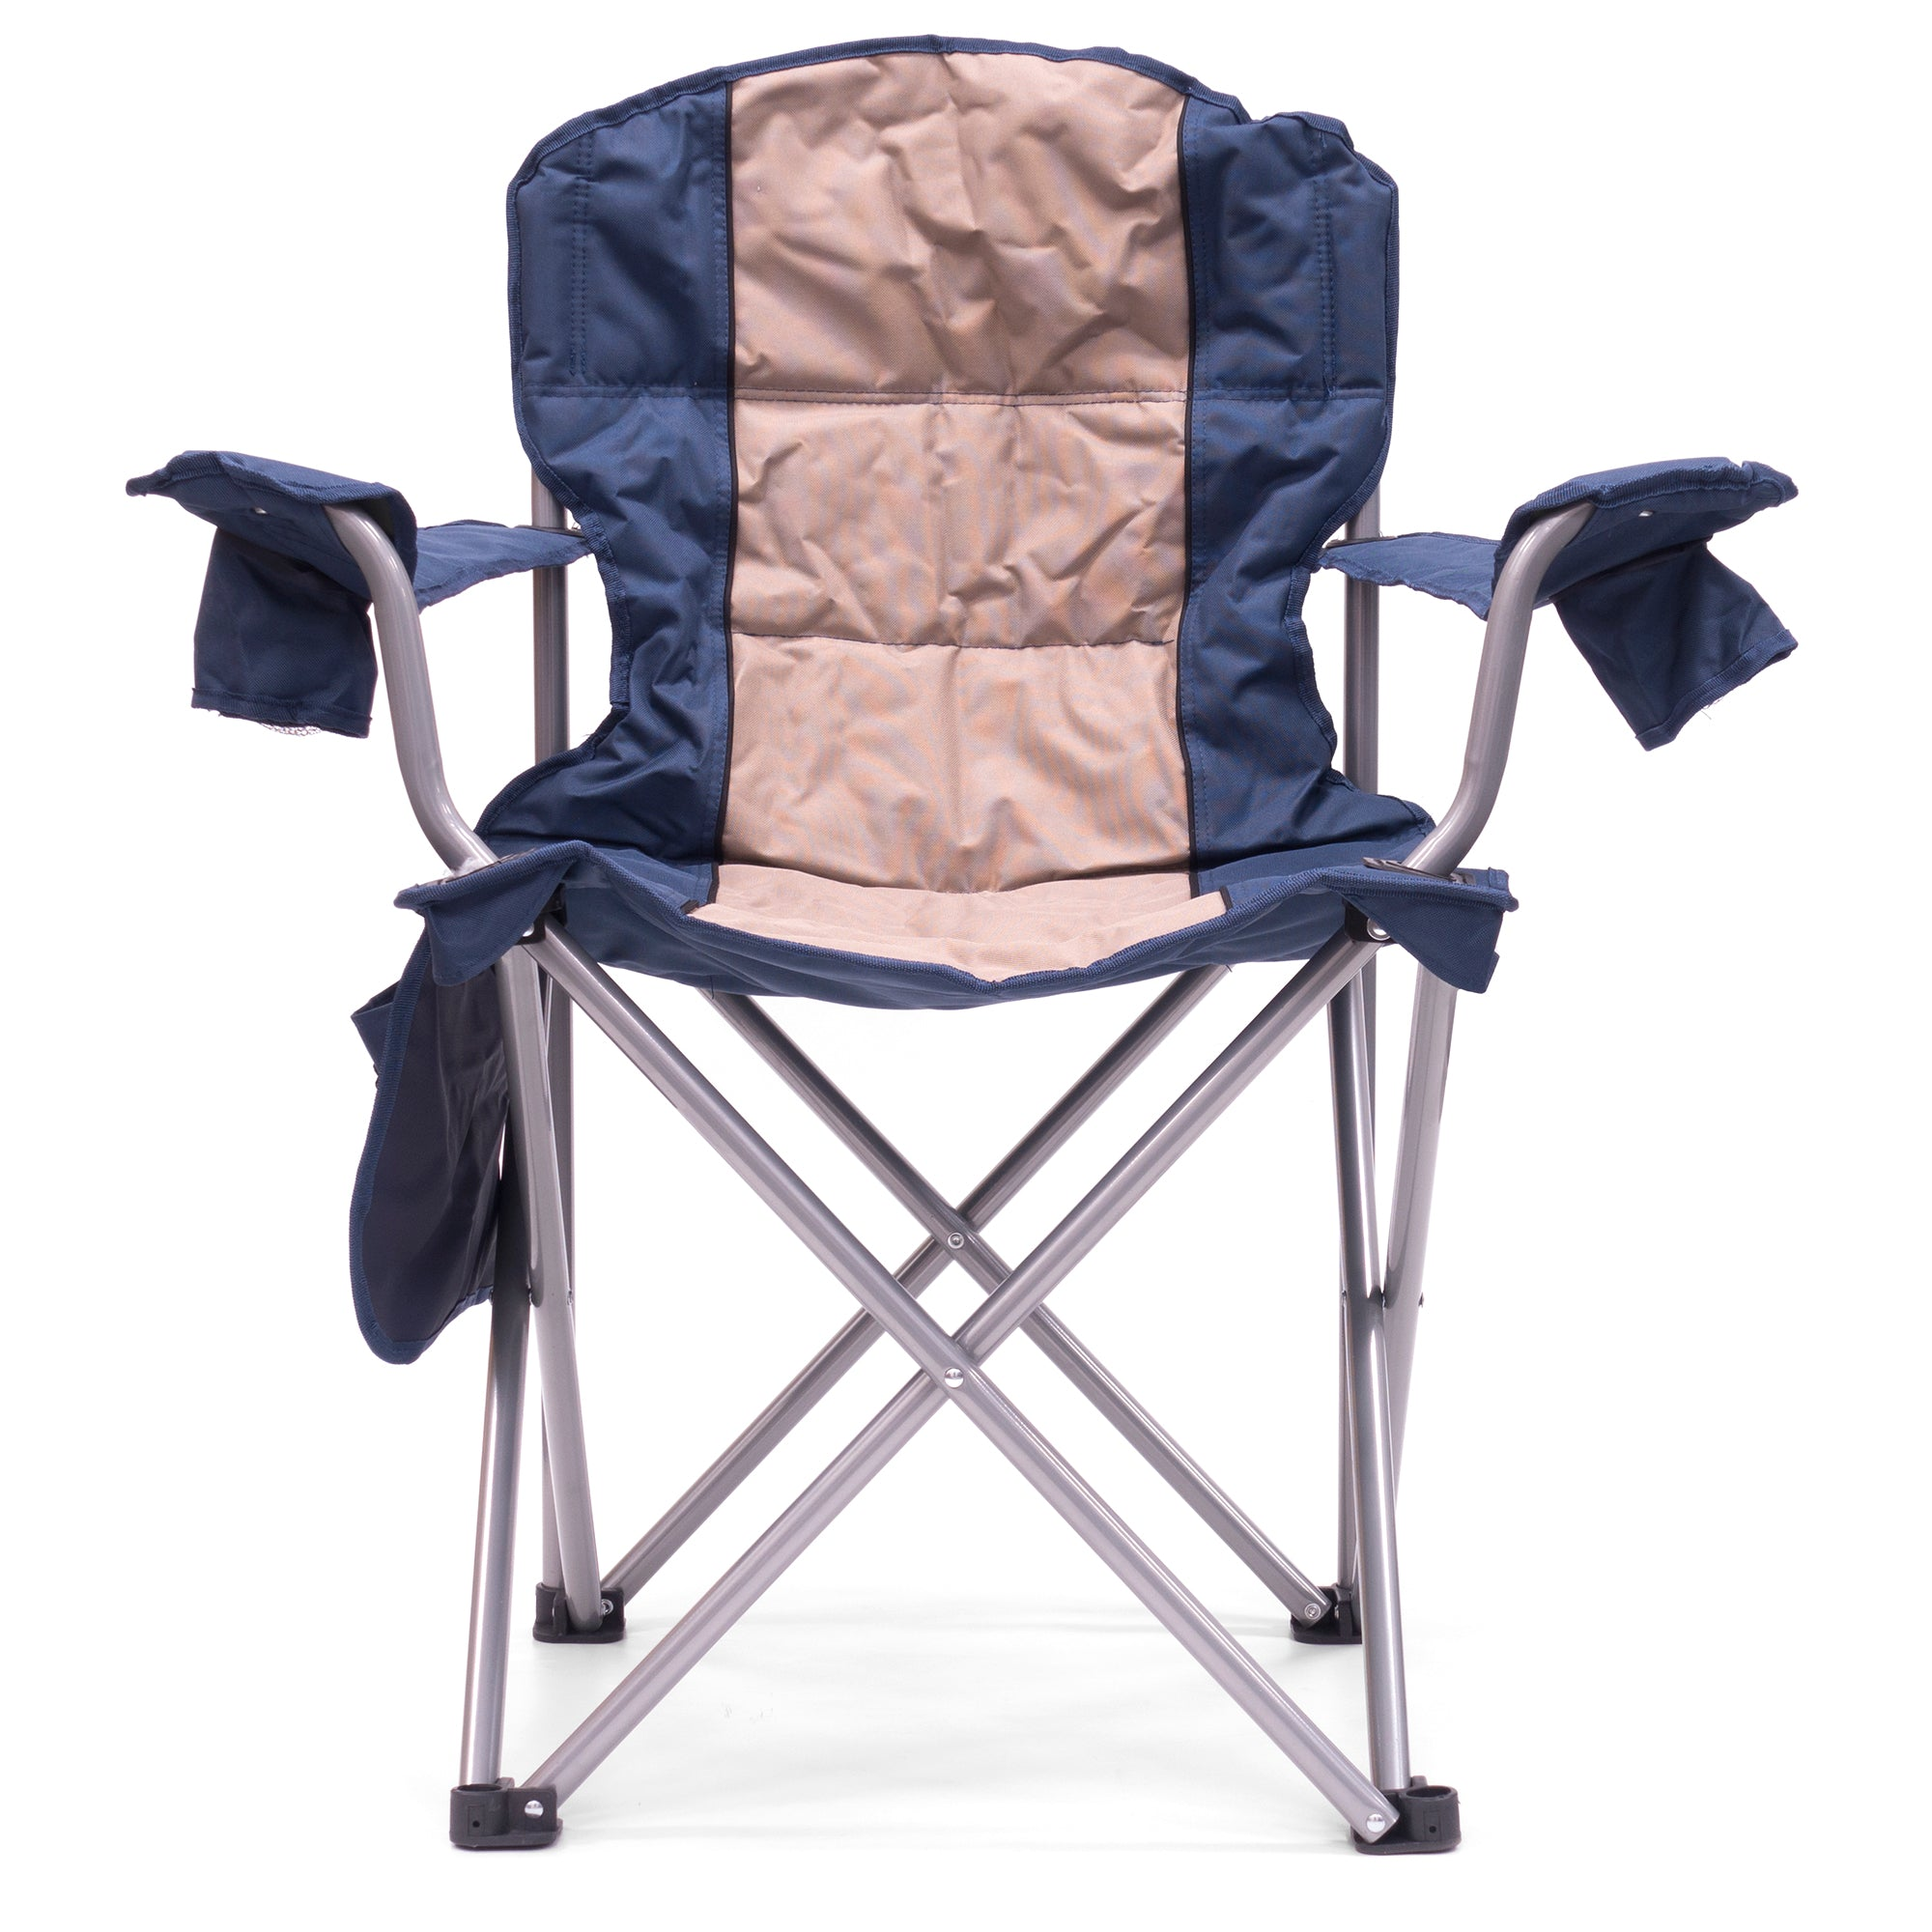 Big Boy Premium Padded Folding Camp Chair Front View